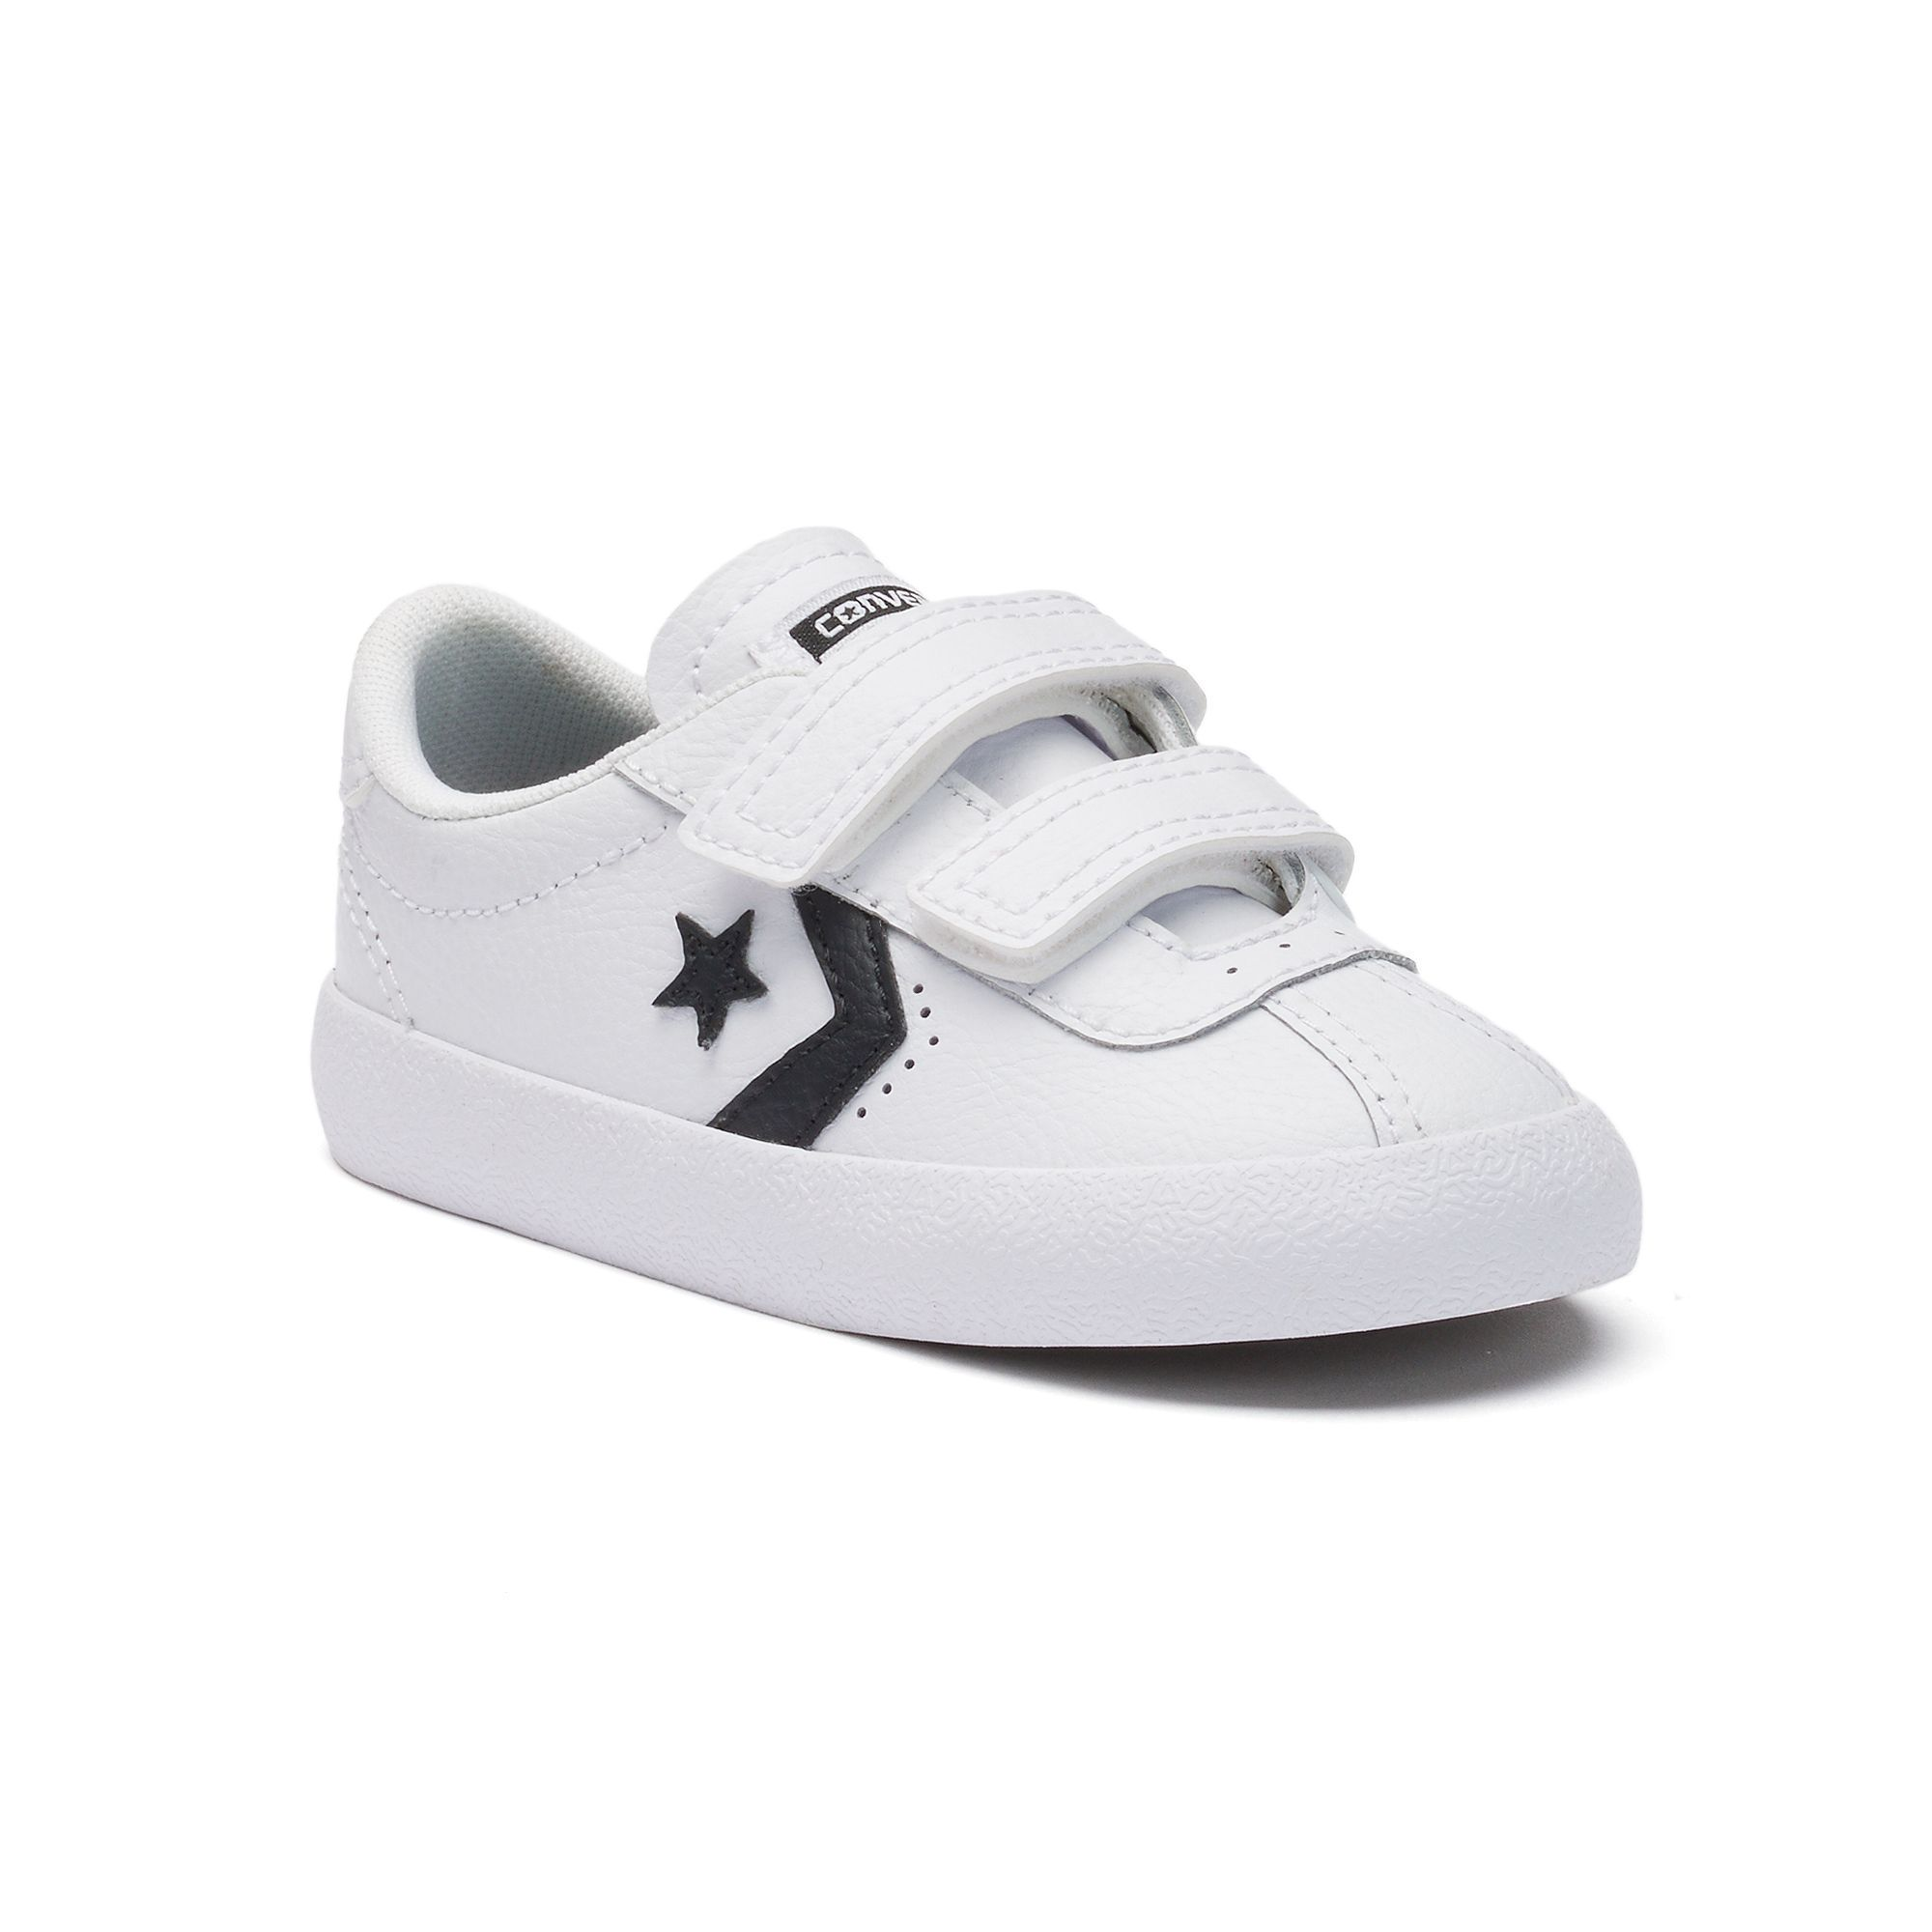 Converse Youth Breakpoint Sneaker